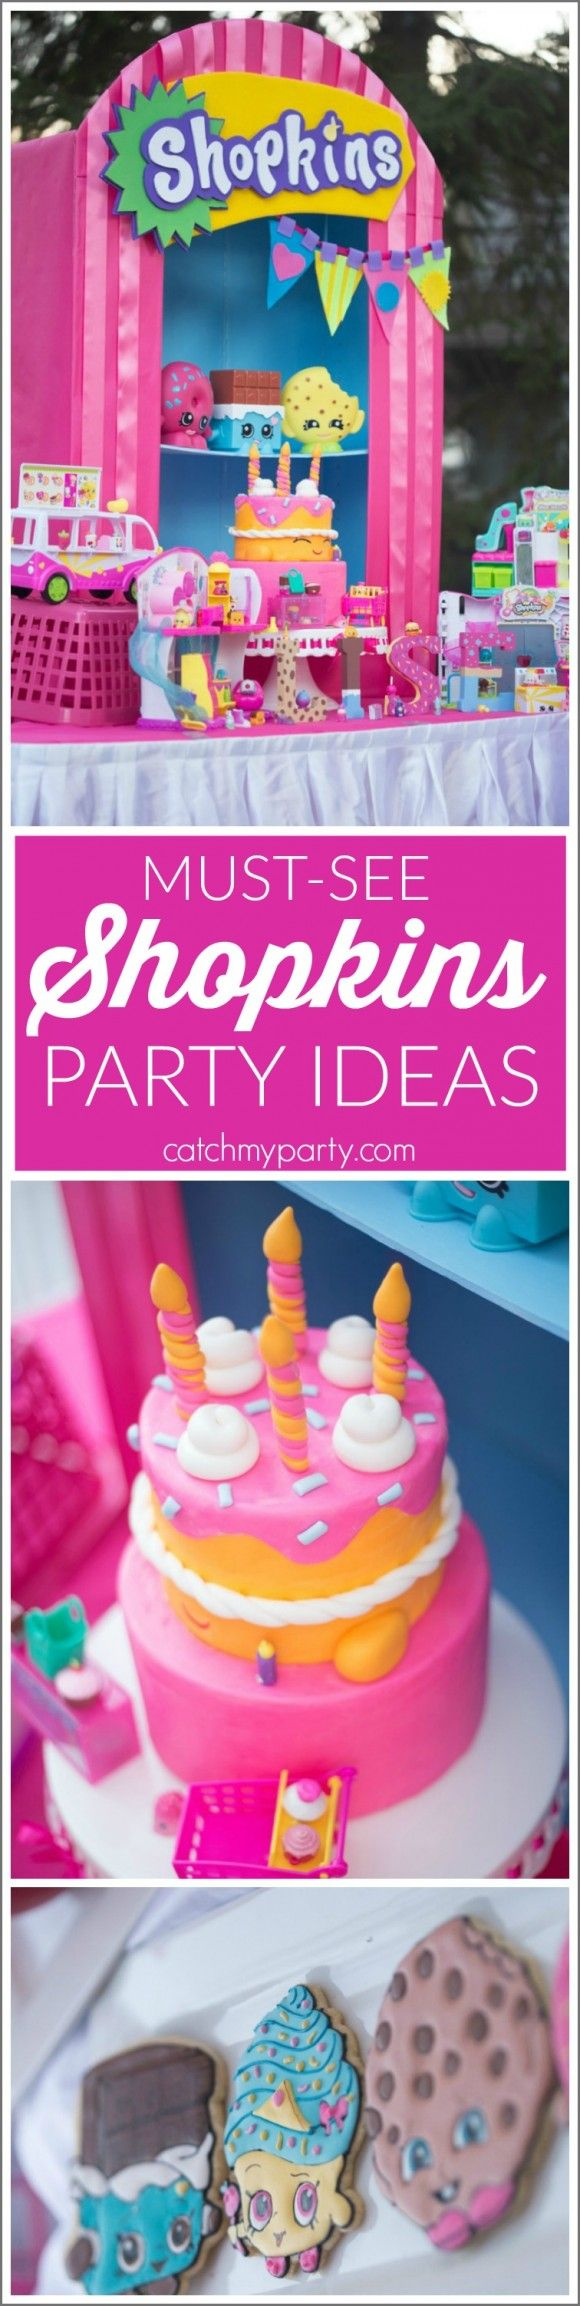 Incredible Shopkins party ideas including dessert table, cake, cookies, decor and more! Use these when planning your next girl birthday party! | CatchMyParty.com